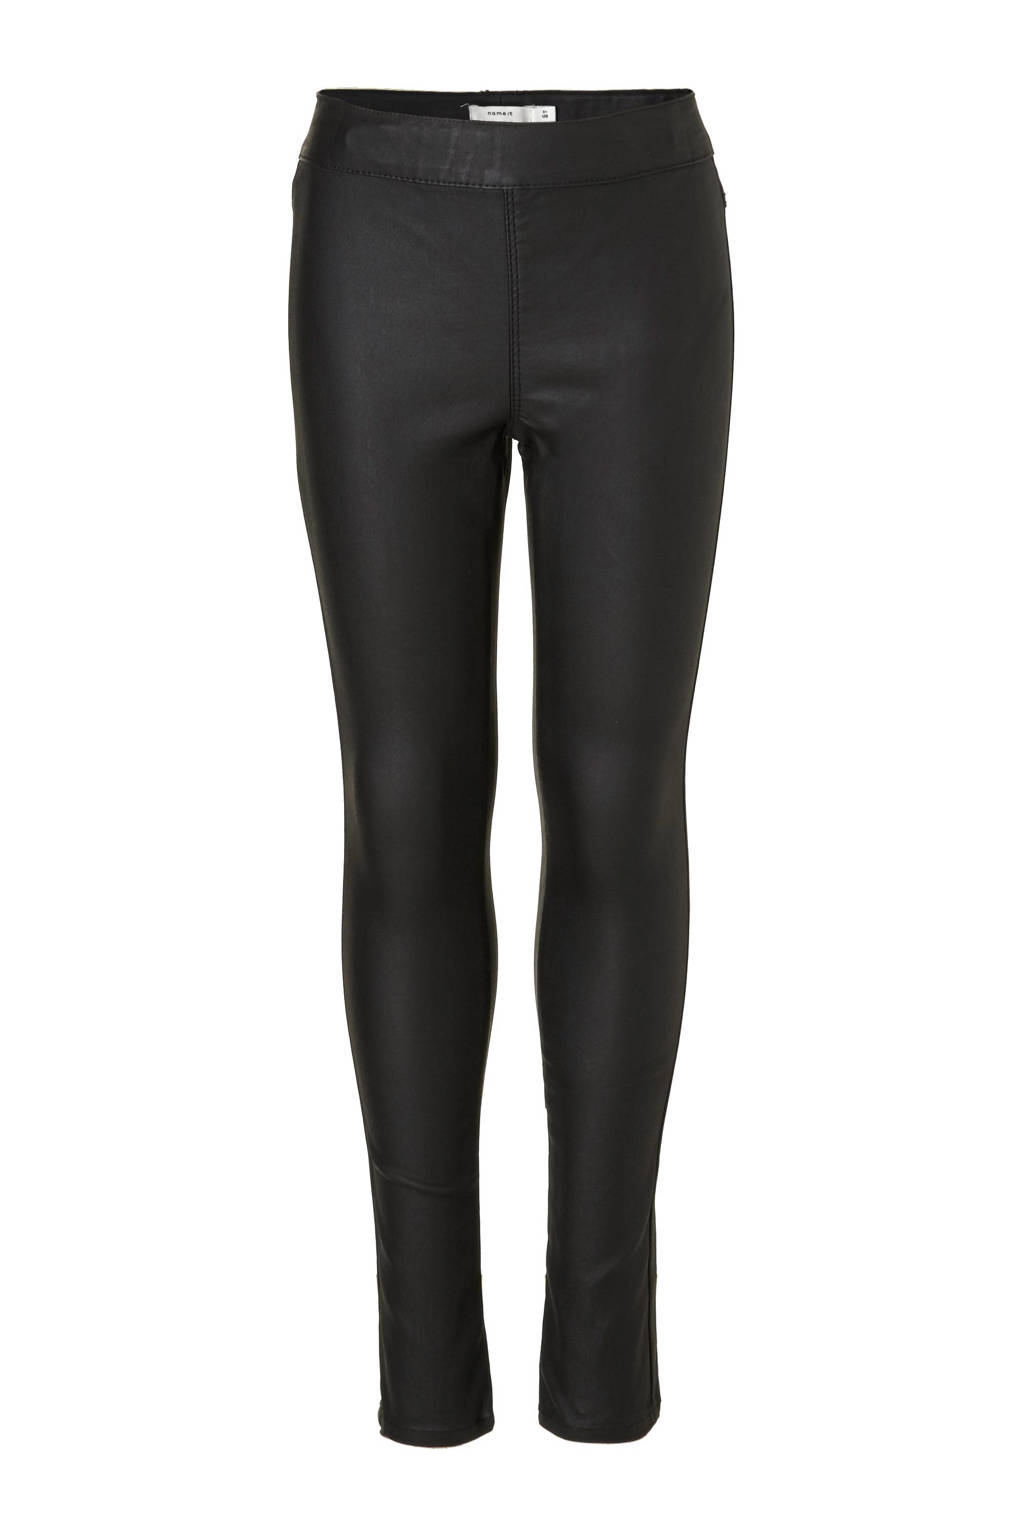 NAME IT KIDS legging, Zwart